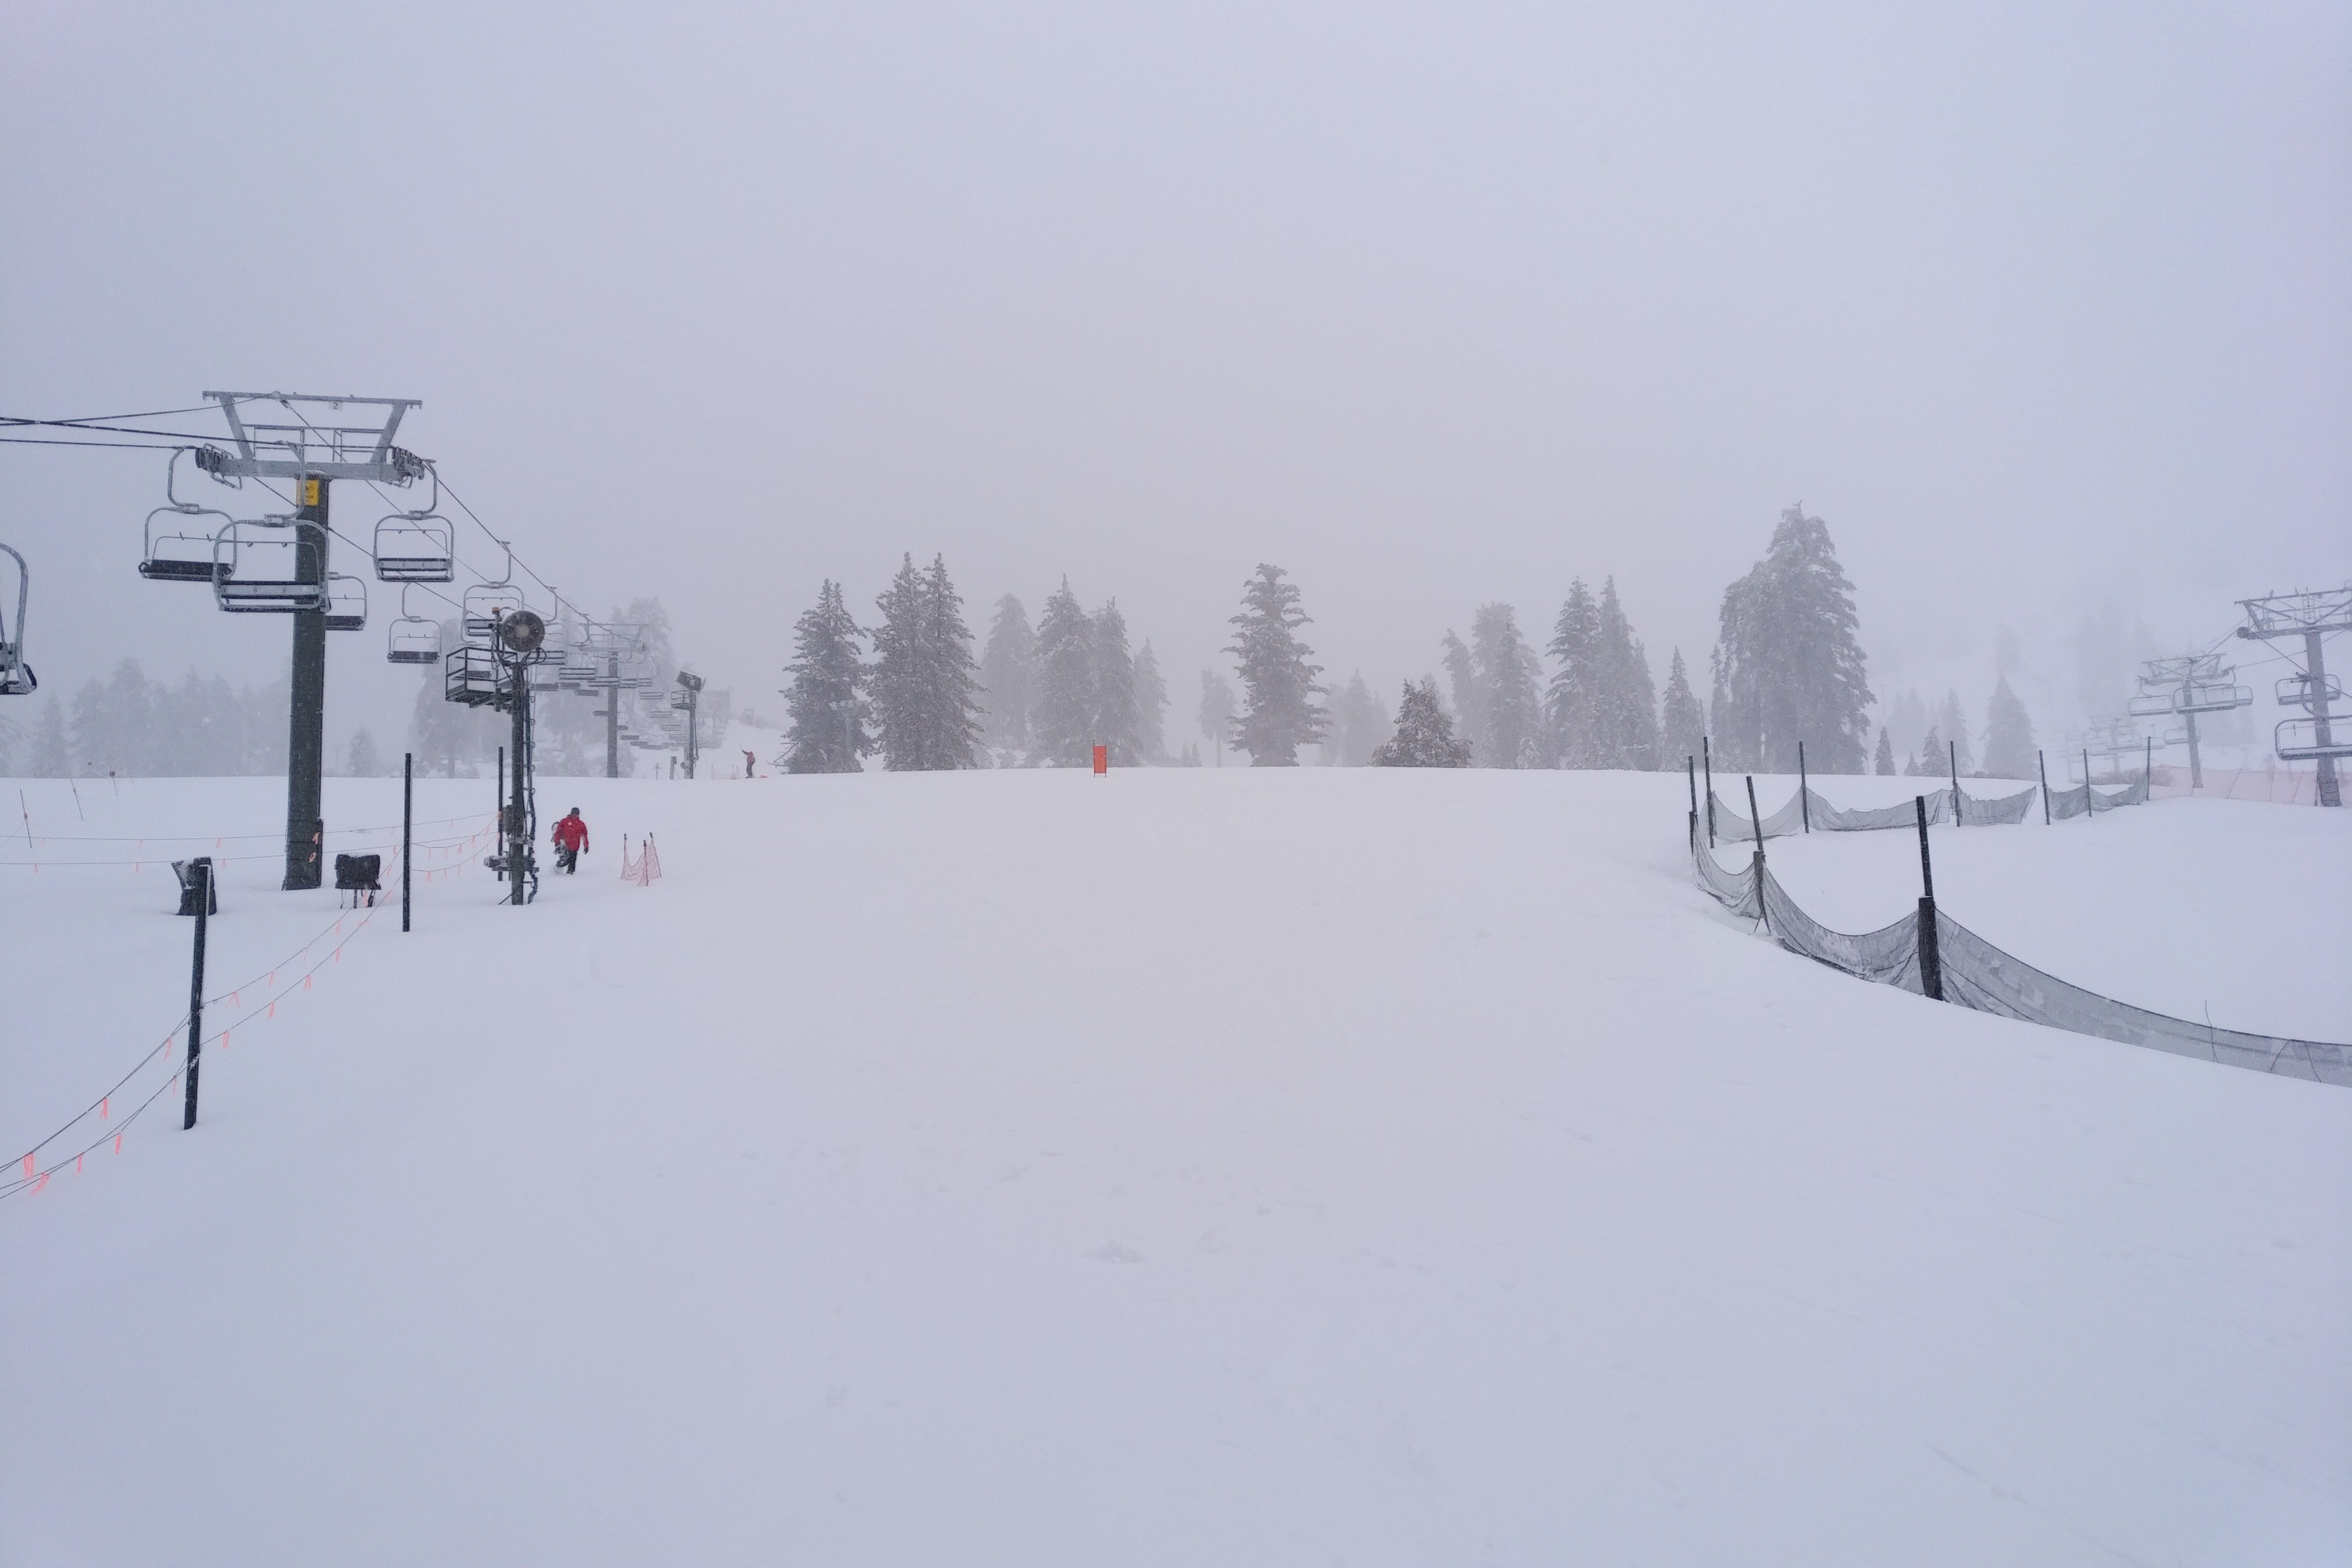 Ski lifts flank pristine snow in overcast weather